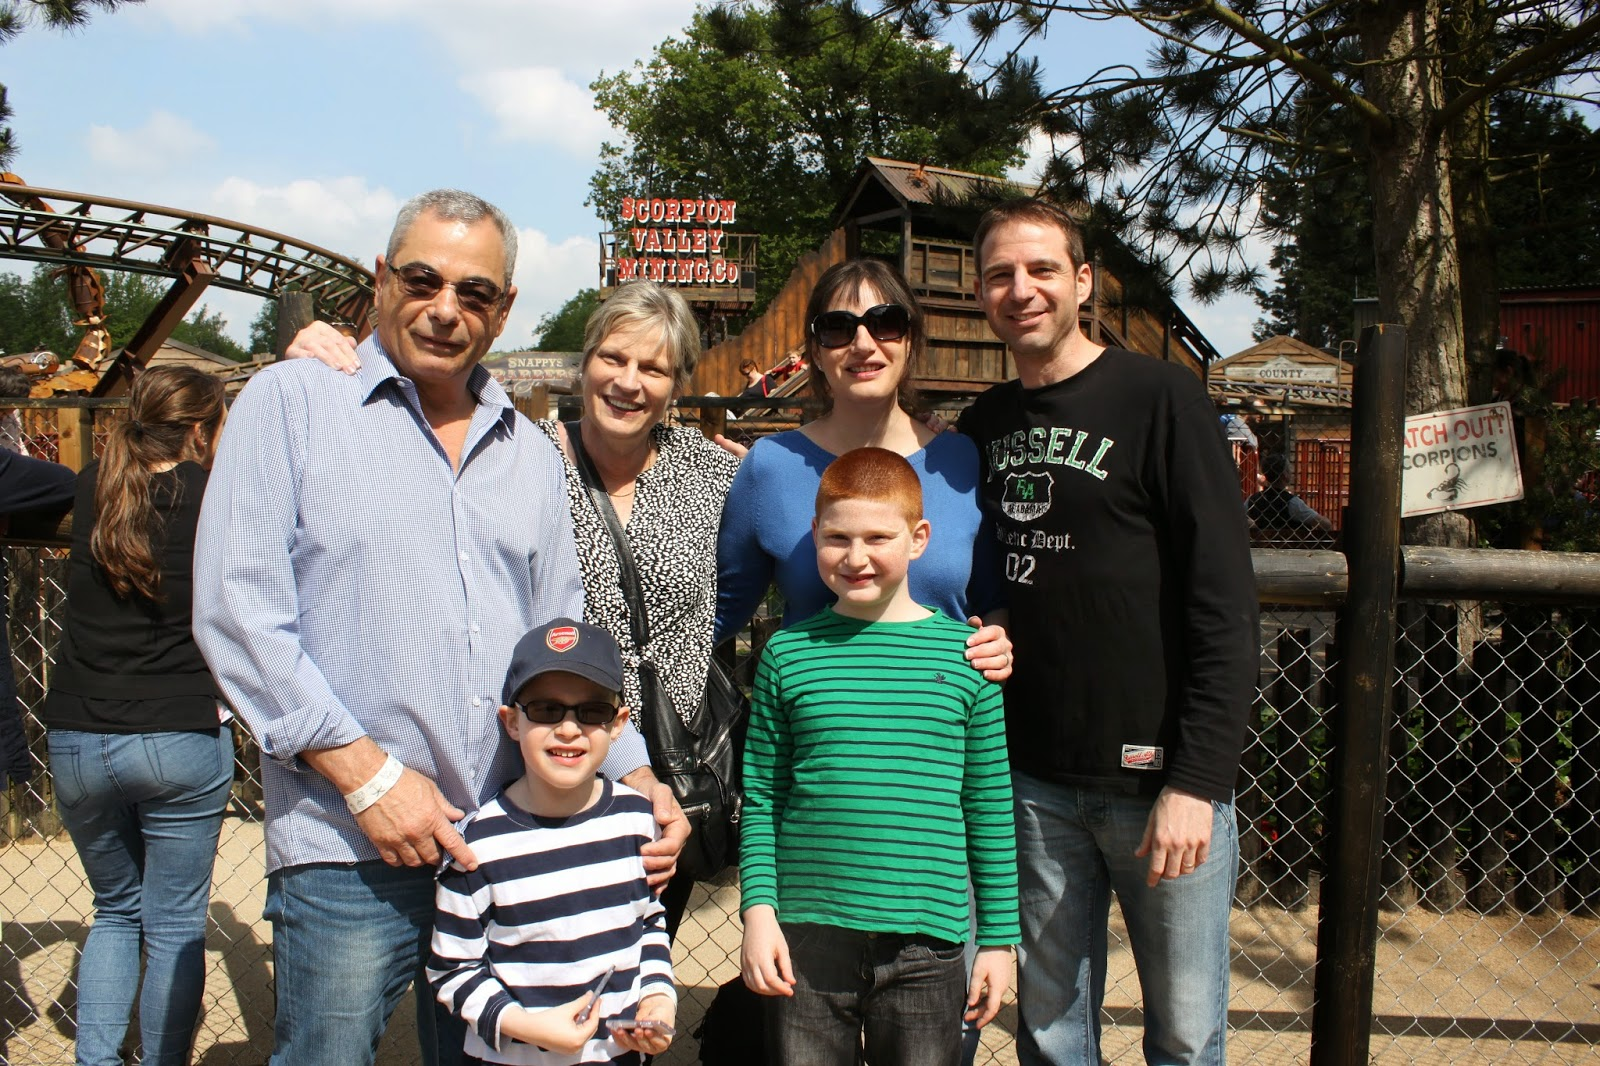 Our adventure at Chessington World of Adventures